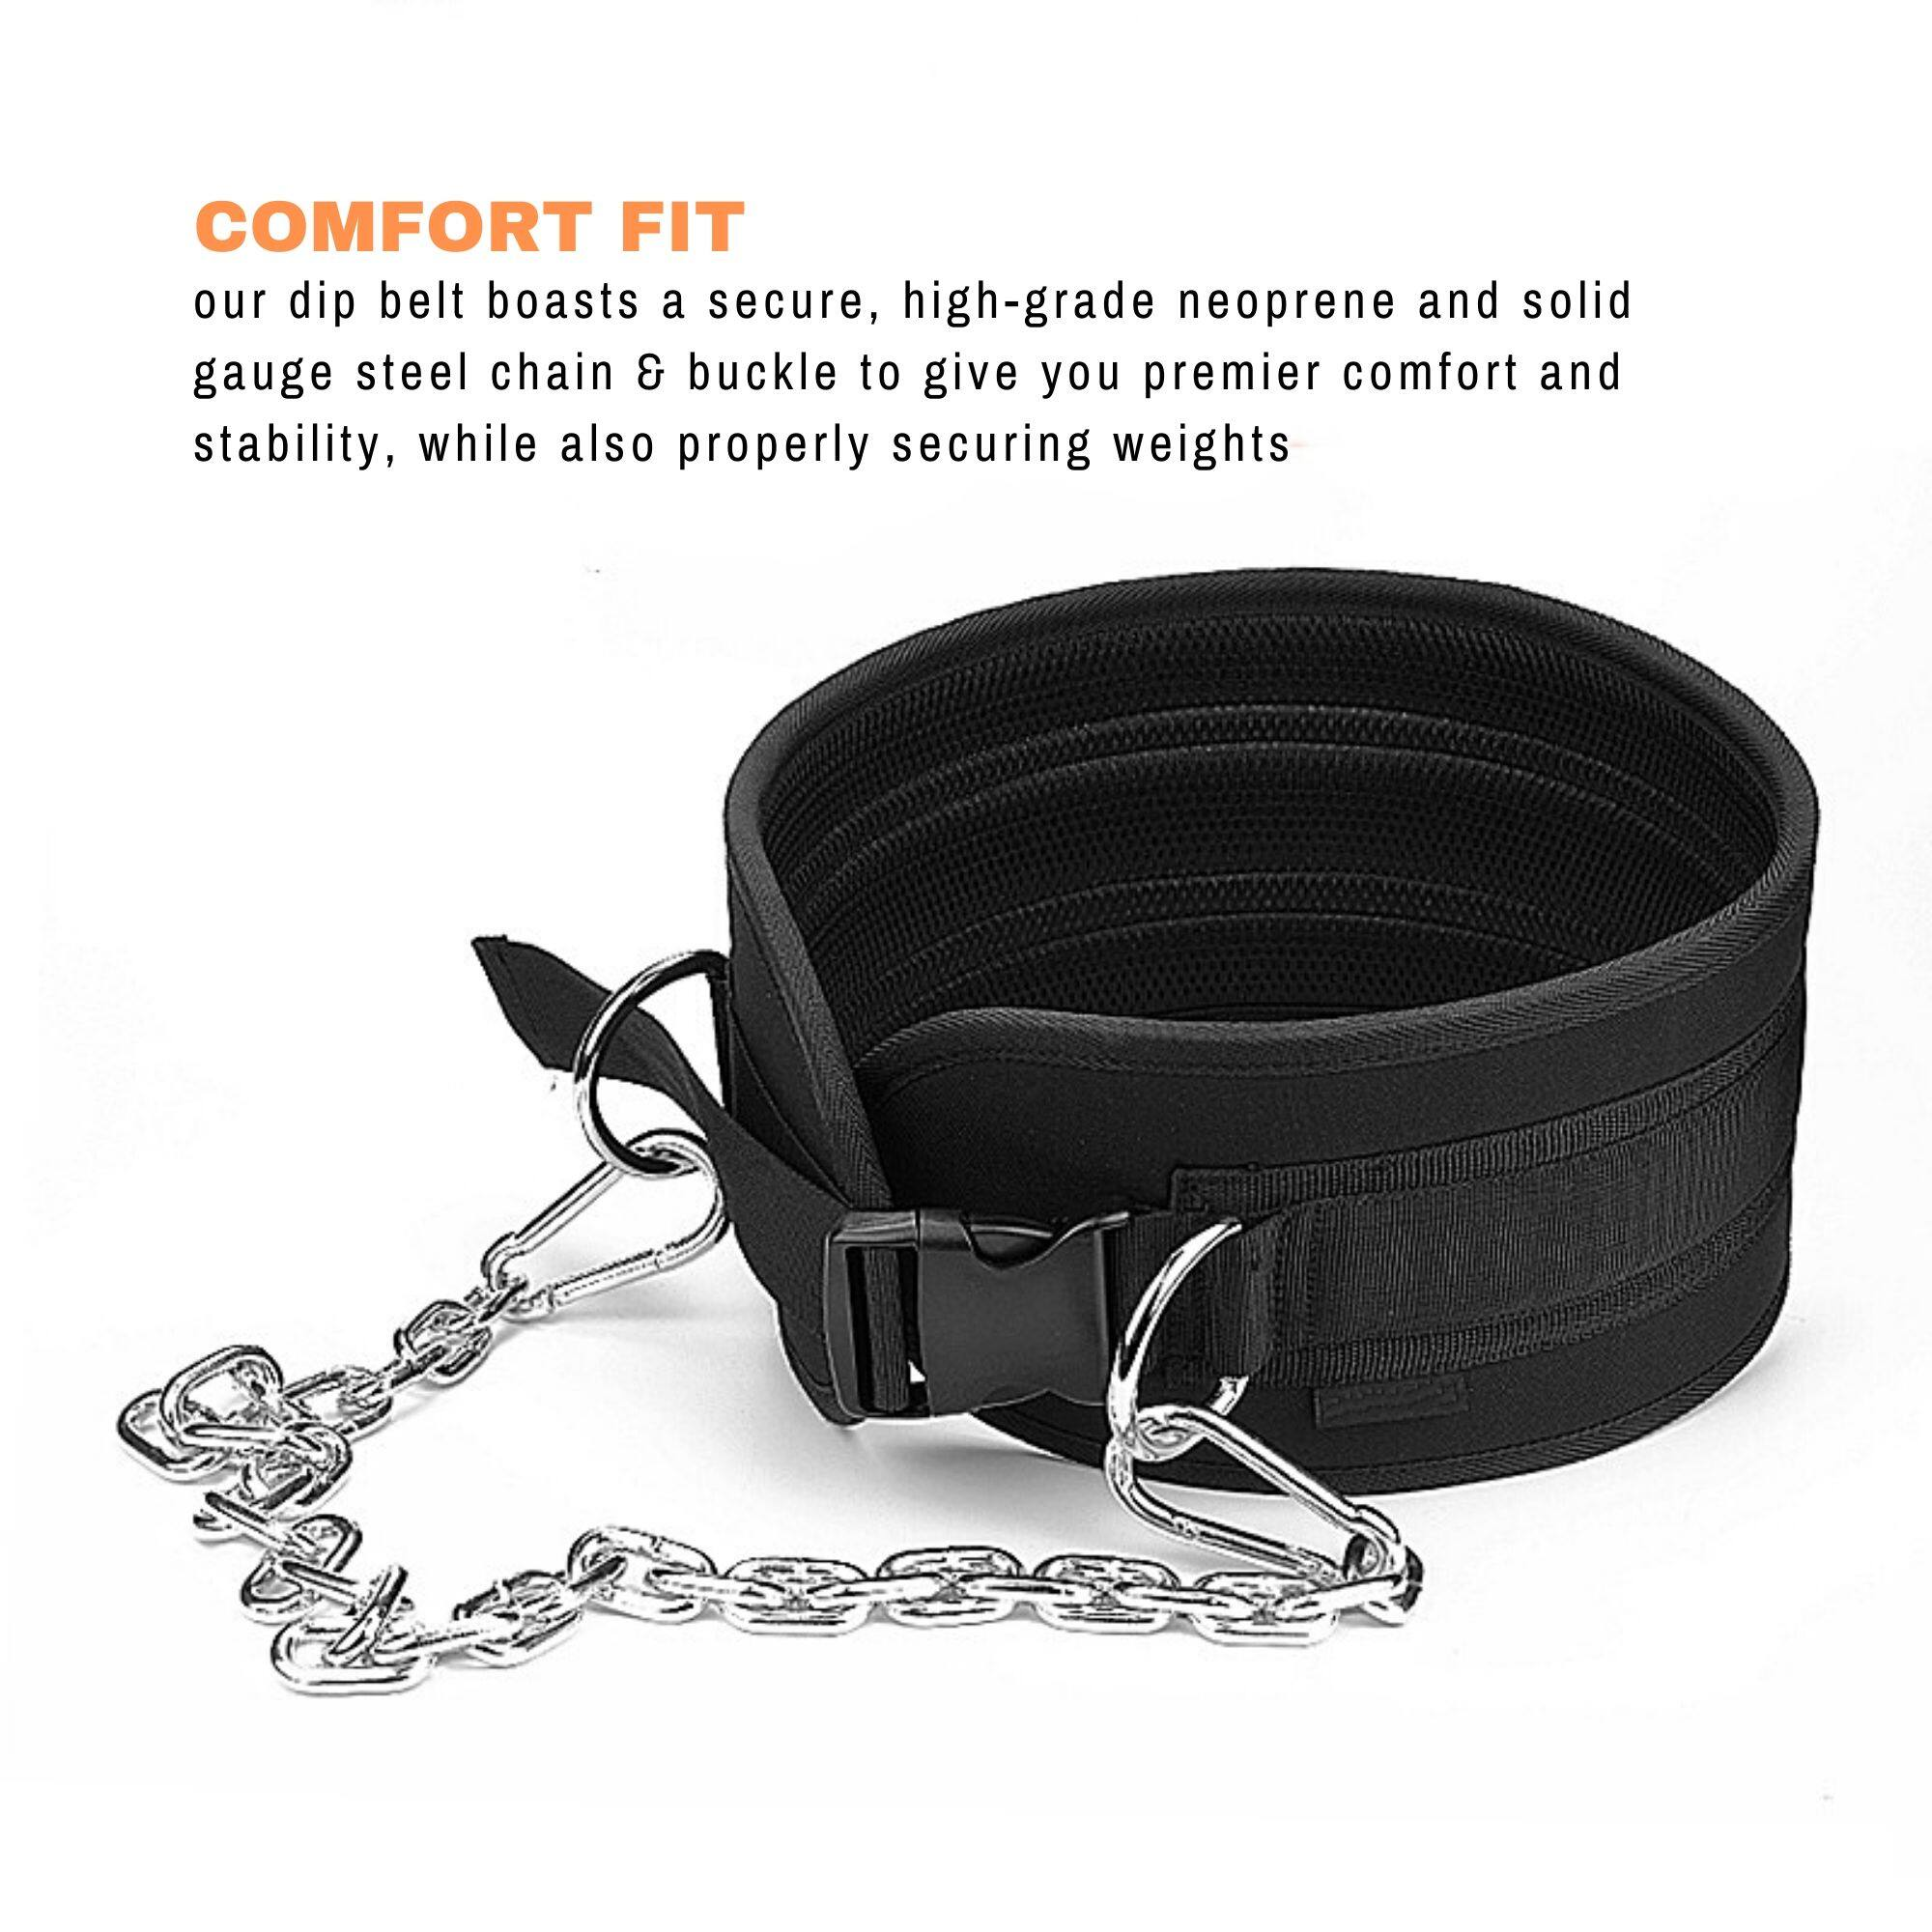 FITUALIZED Premium Dip Belt for Progressive Overload- Special Buckle to Ensure Tightness- Comes with Heavy Duty Steel Chain, Comfort Fit Neoprene & Double Stitching- Excel in Your Weightlifting & Bodybuilding Workouts, Sports, Exercise at the Gym Now